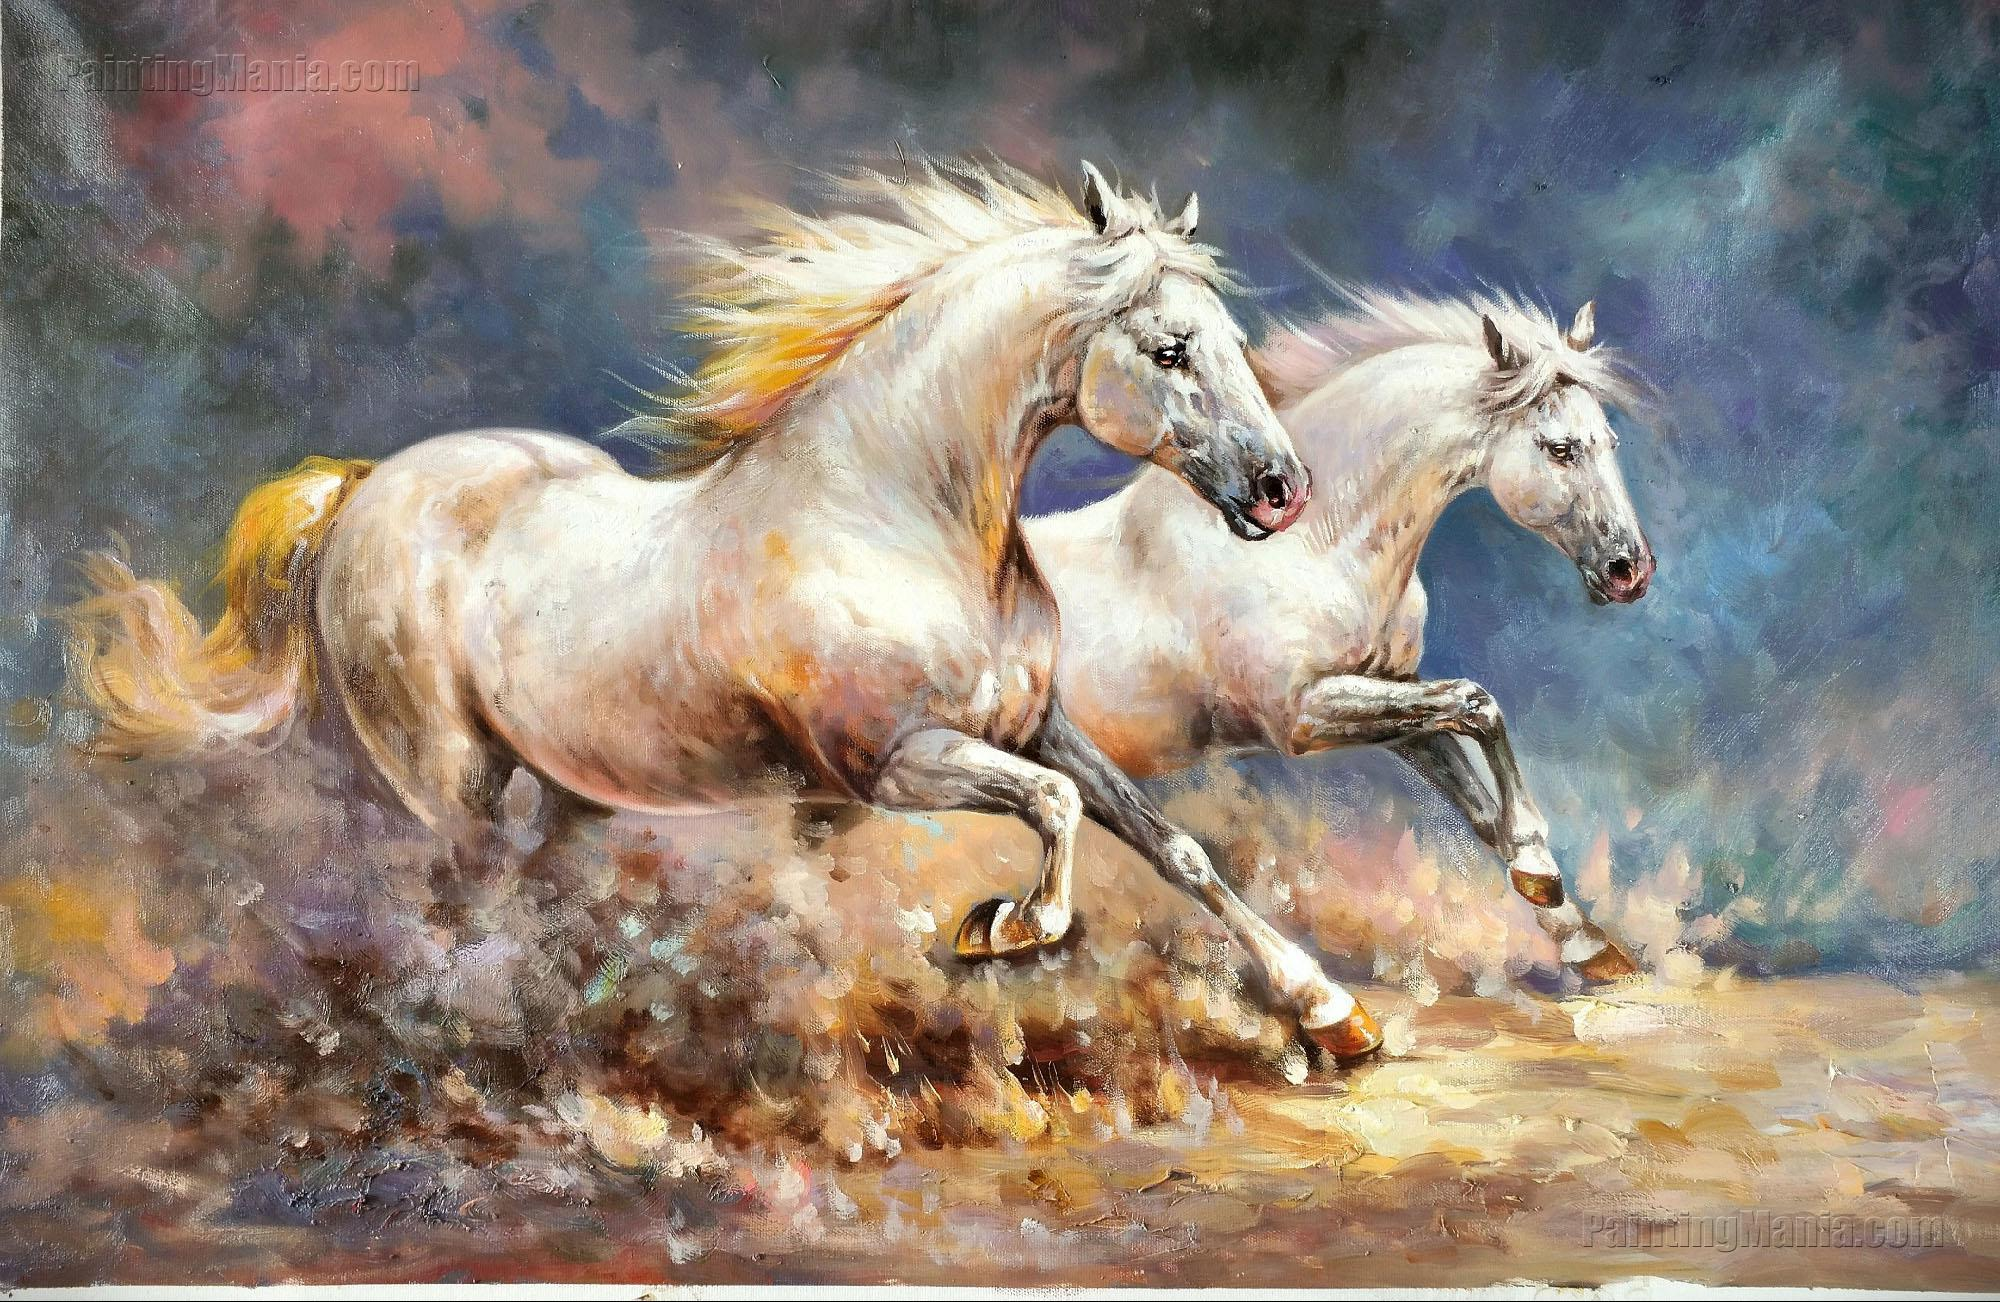 Two Galloping White Horses on the Plains